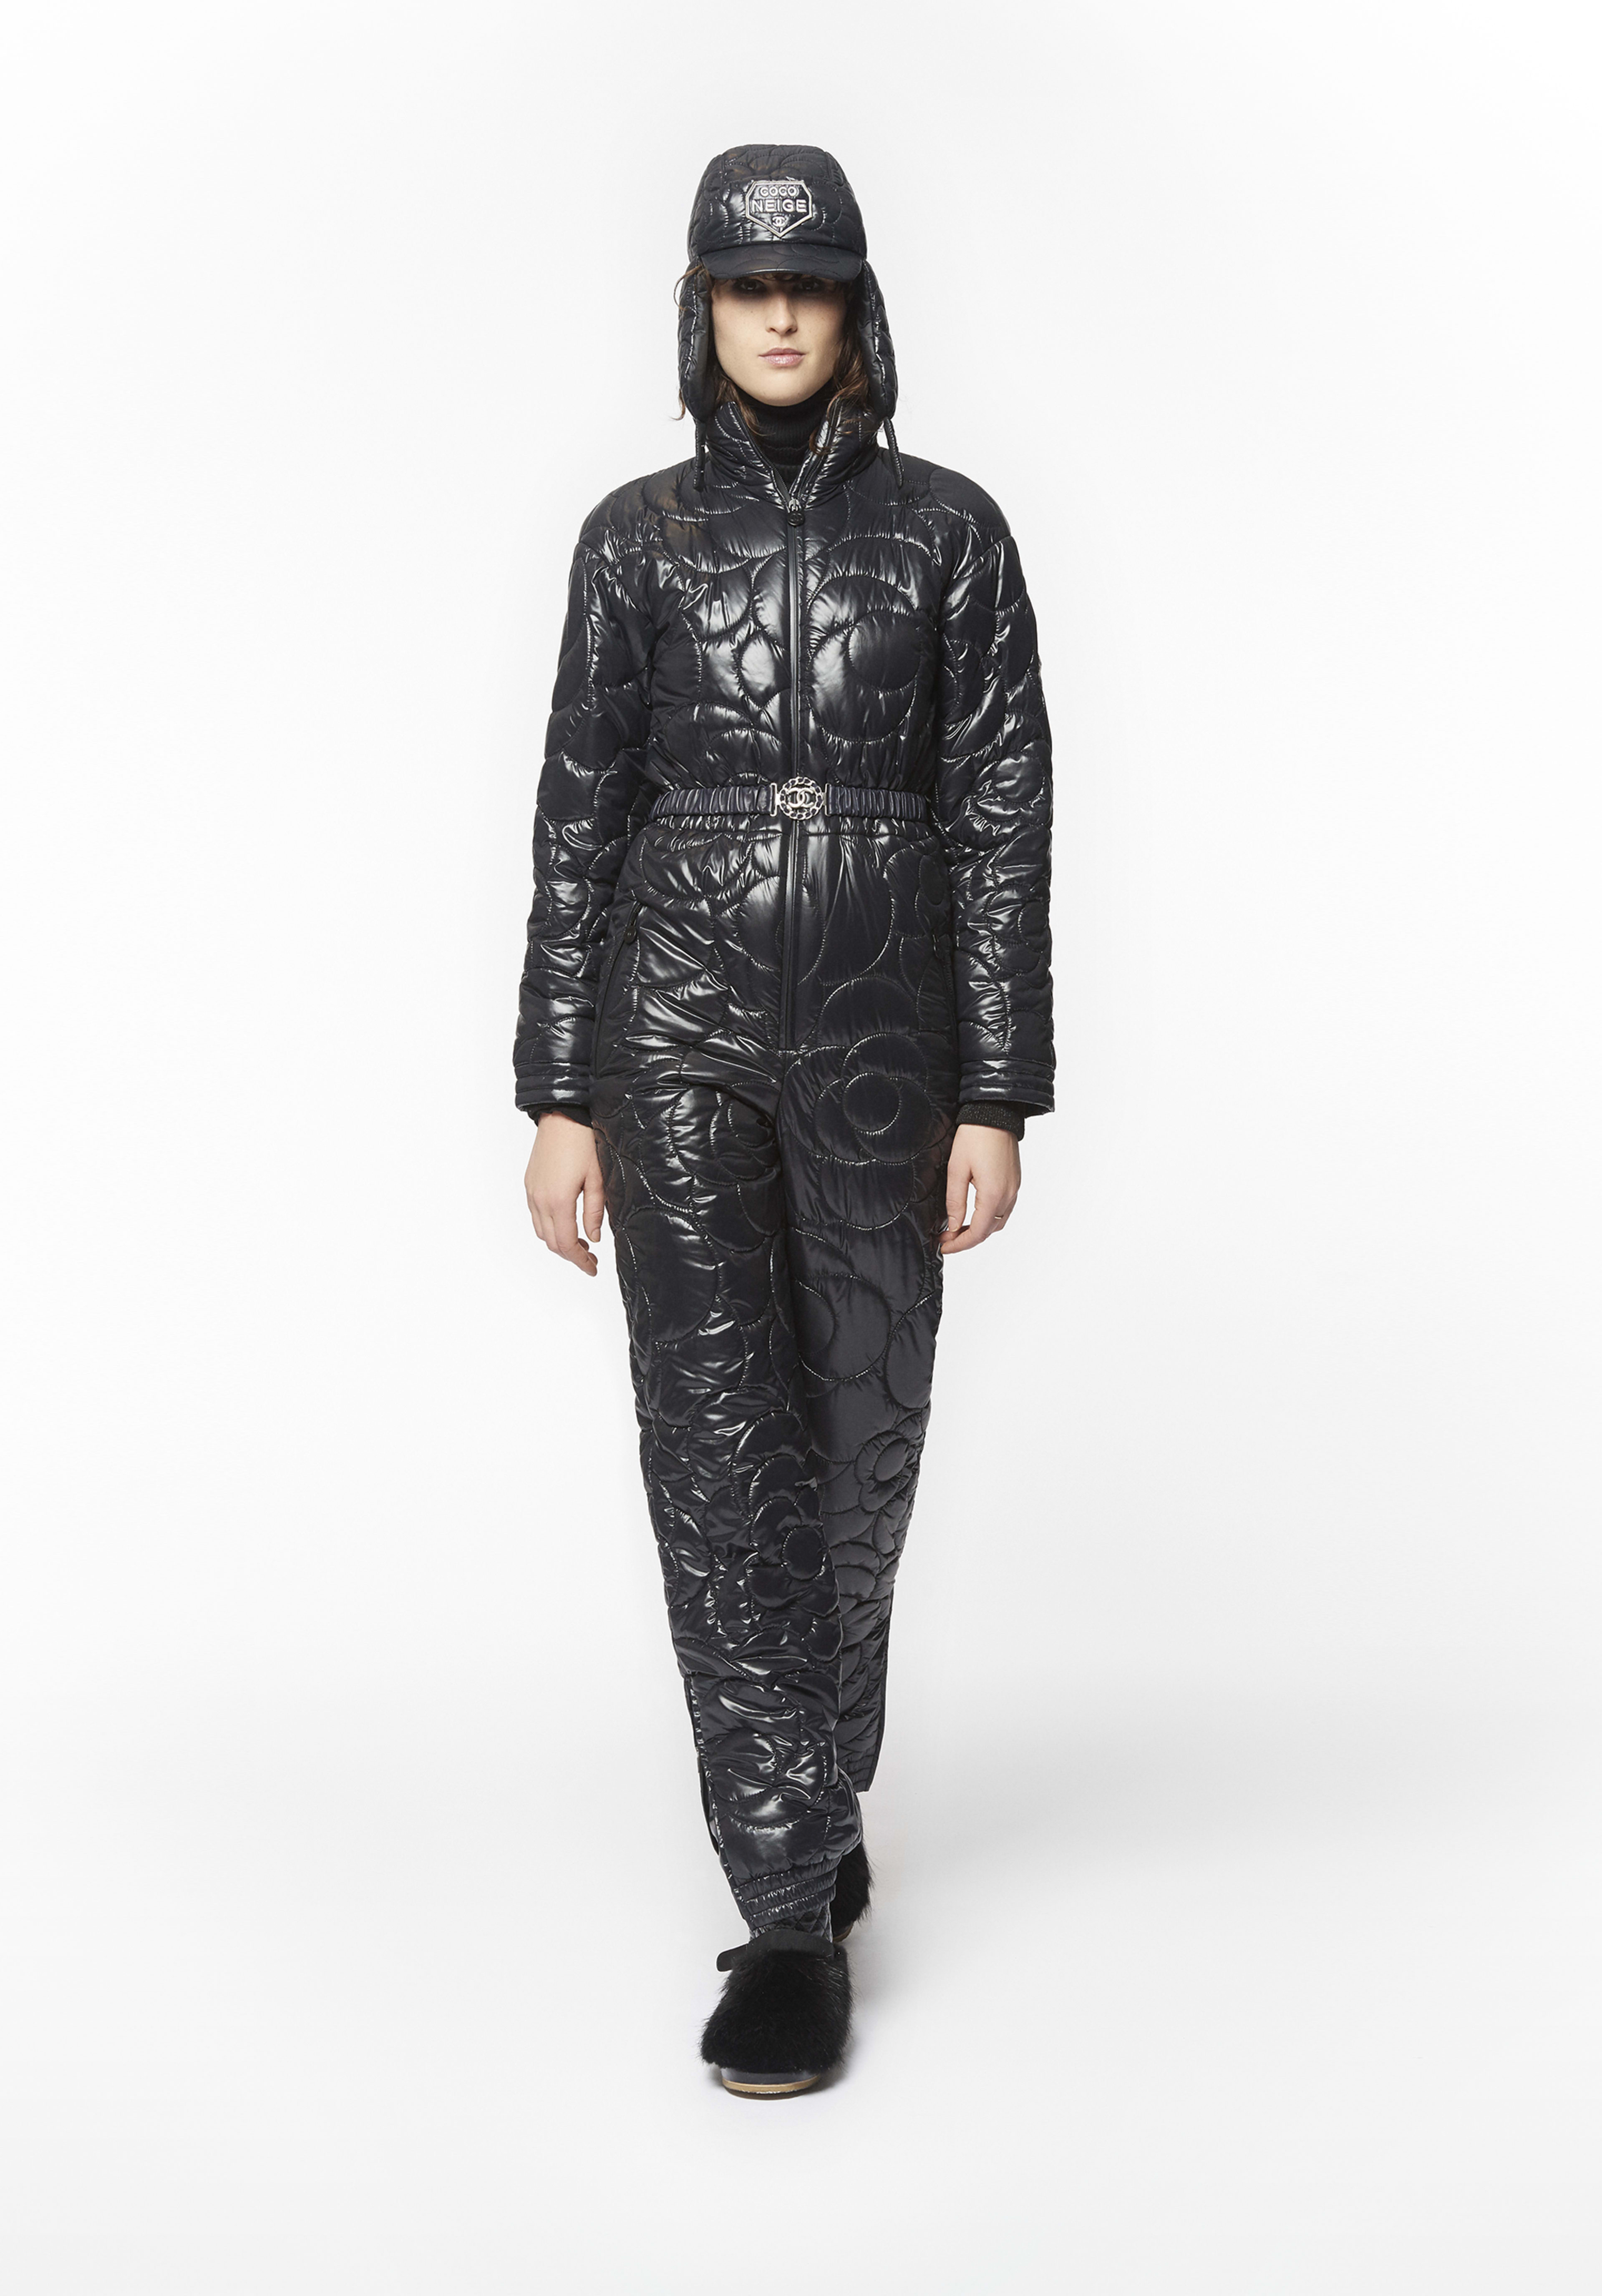 Look 11 - Coco Neige Collection